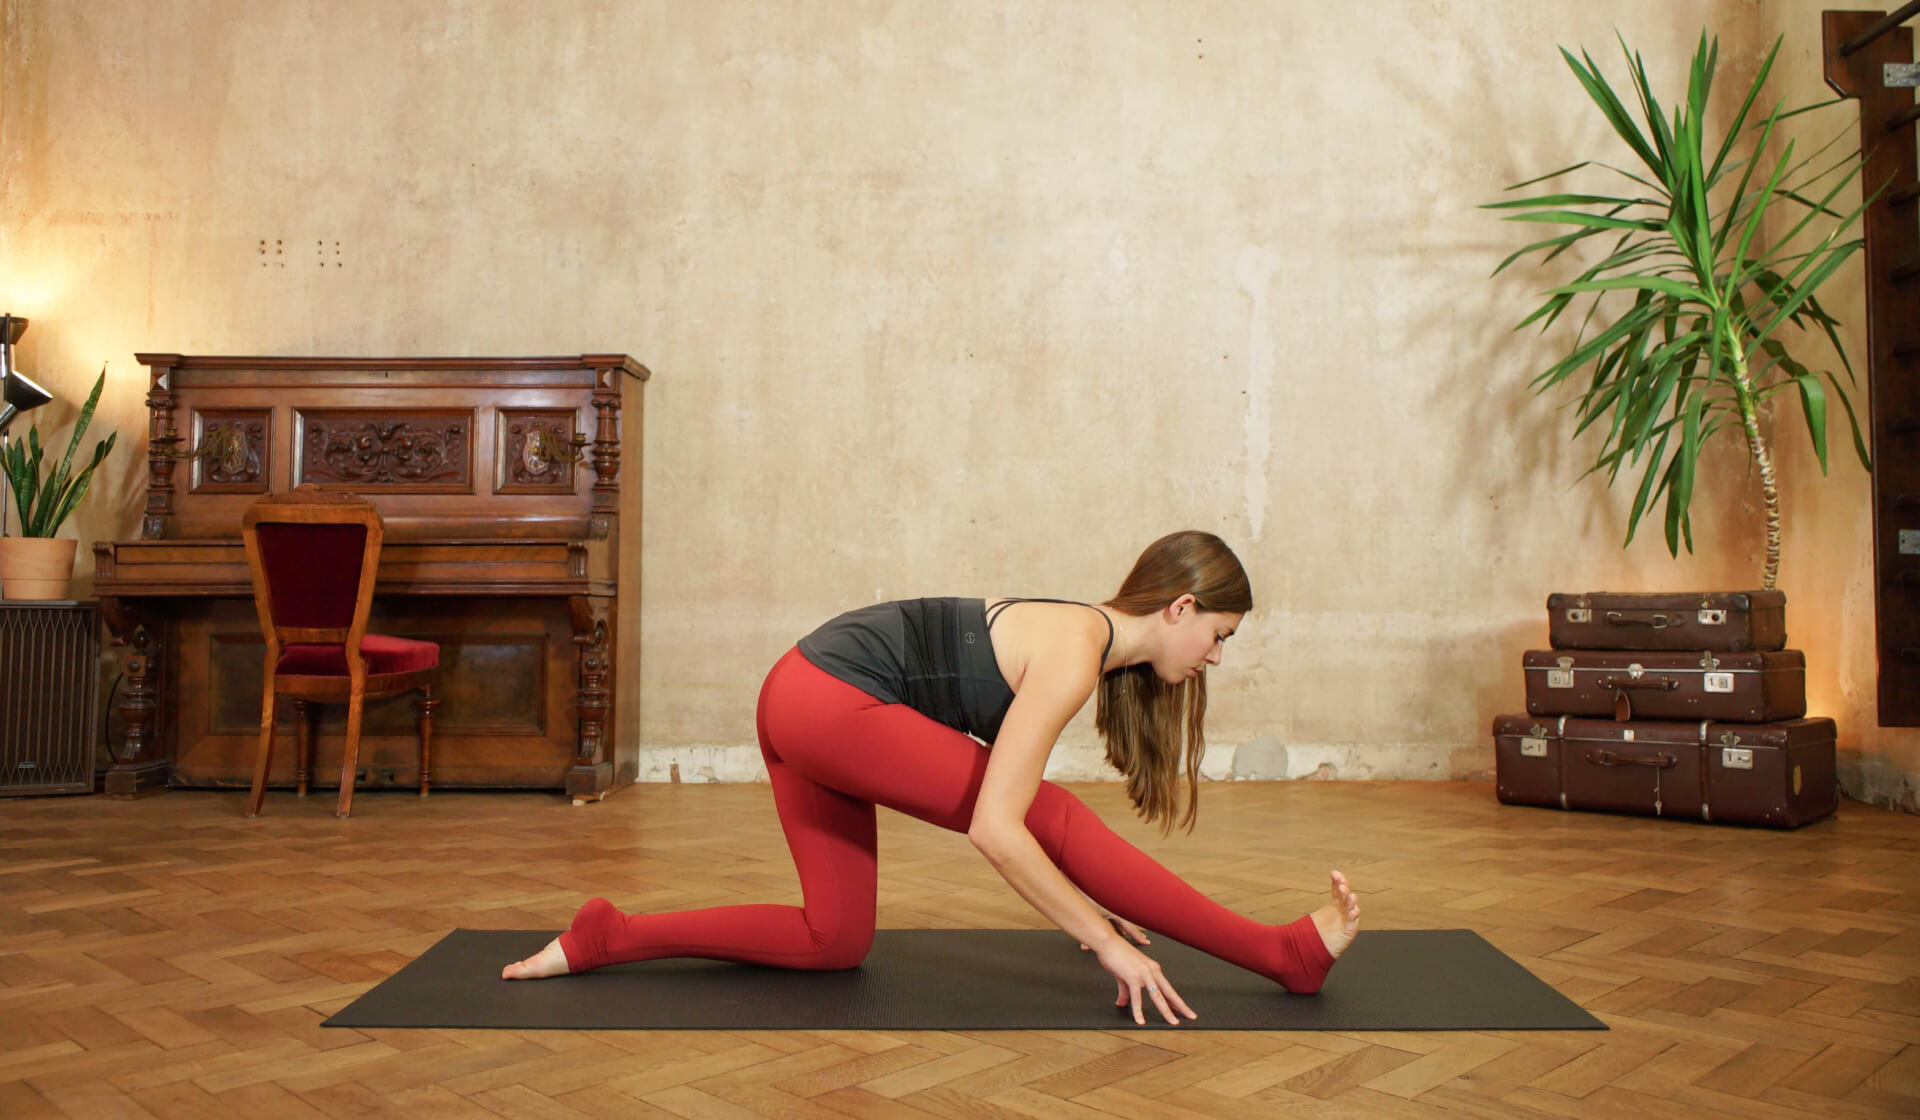 Yoga teacher in black tank top and red yoga pants folding forward into half splits on a black yoga mat in front of a piano, beige wall, stack of suitcases, and green palm tree